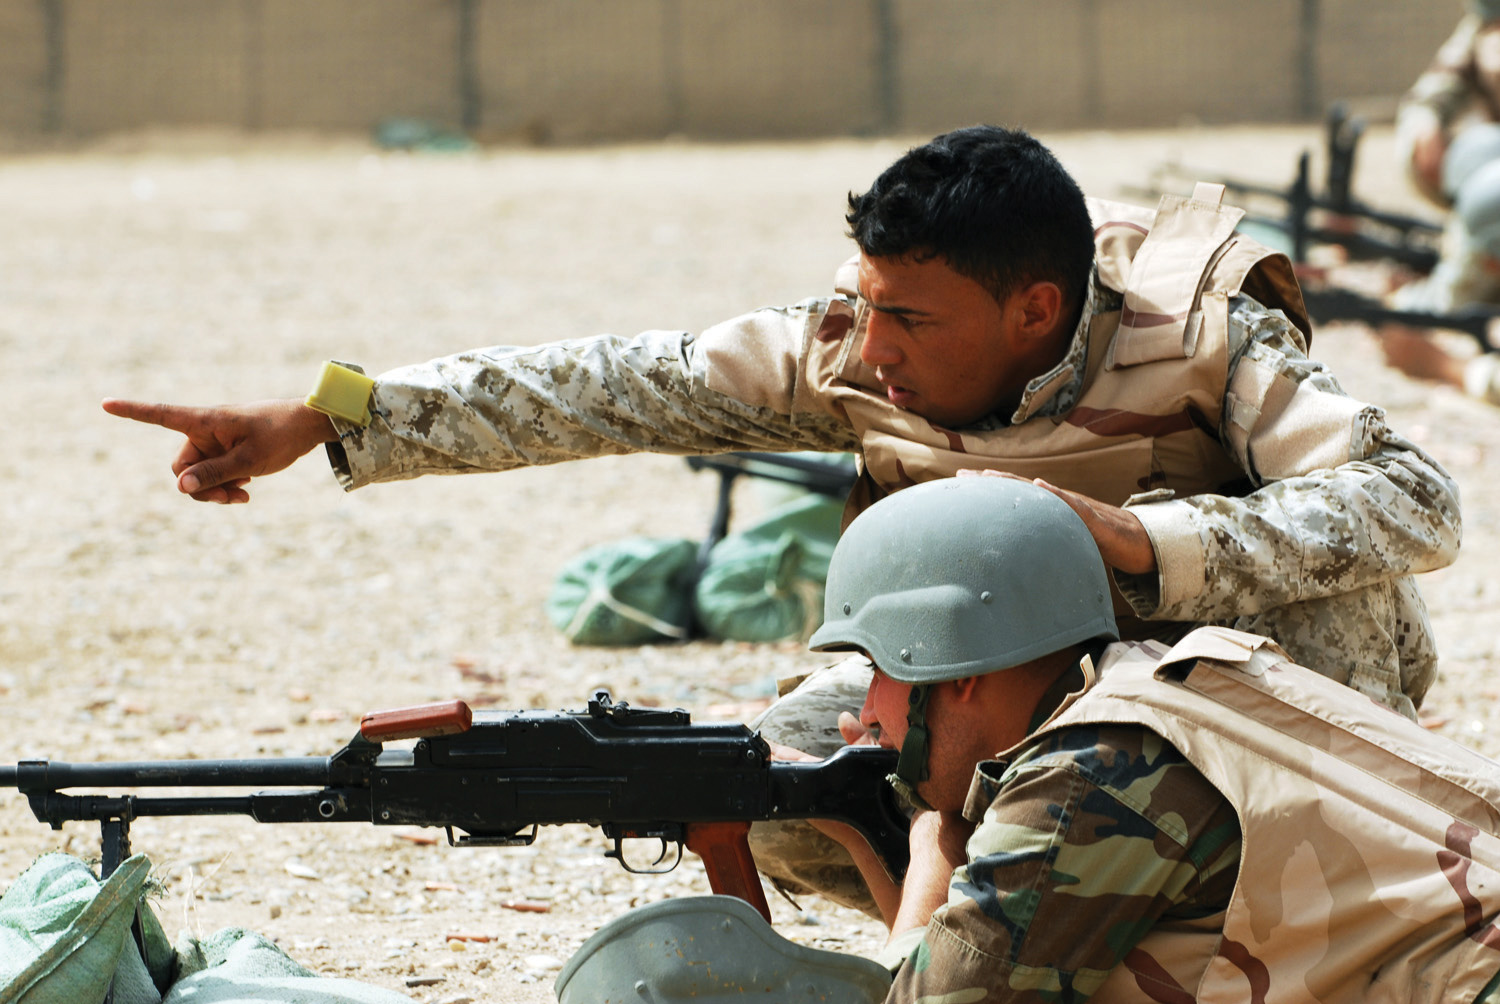 Men in the army working on target practice